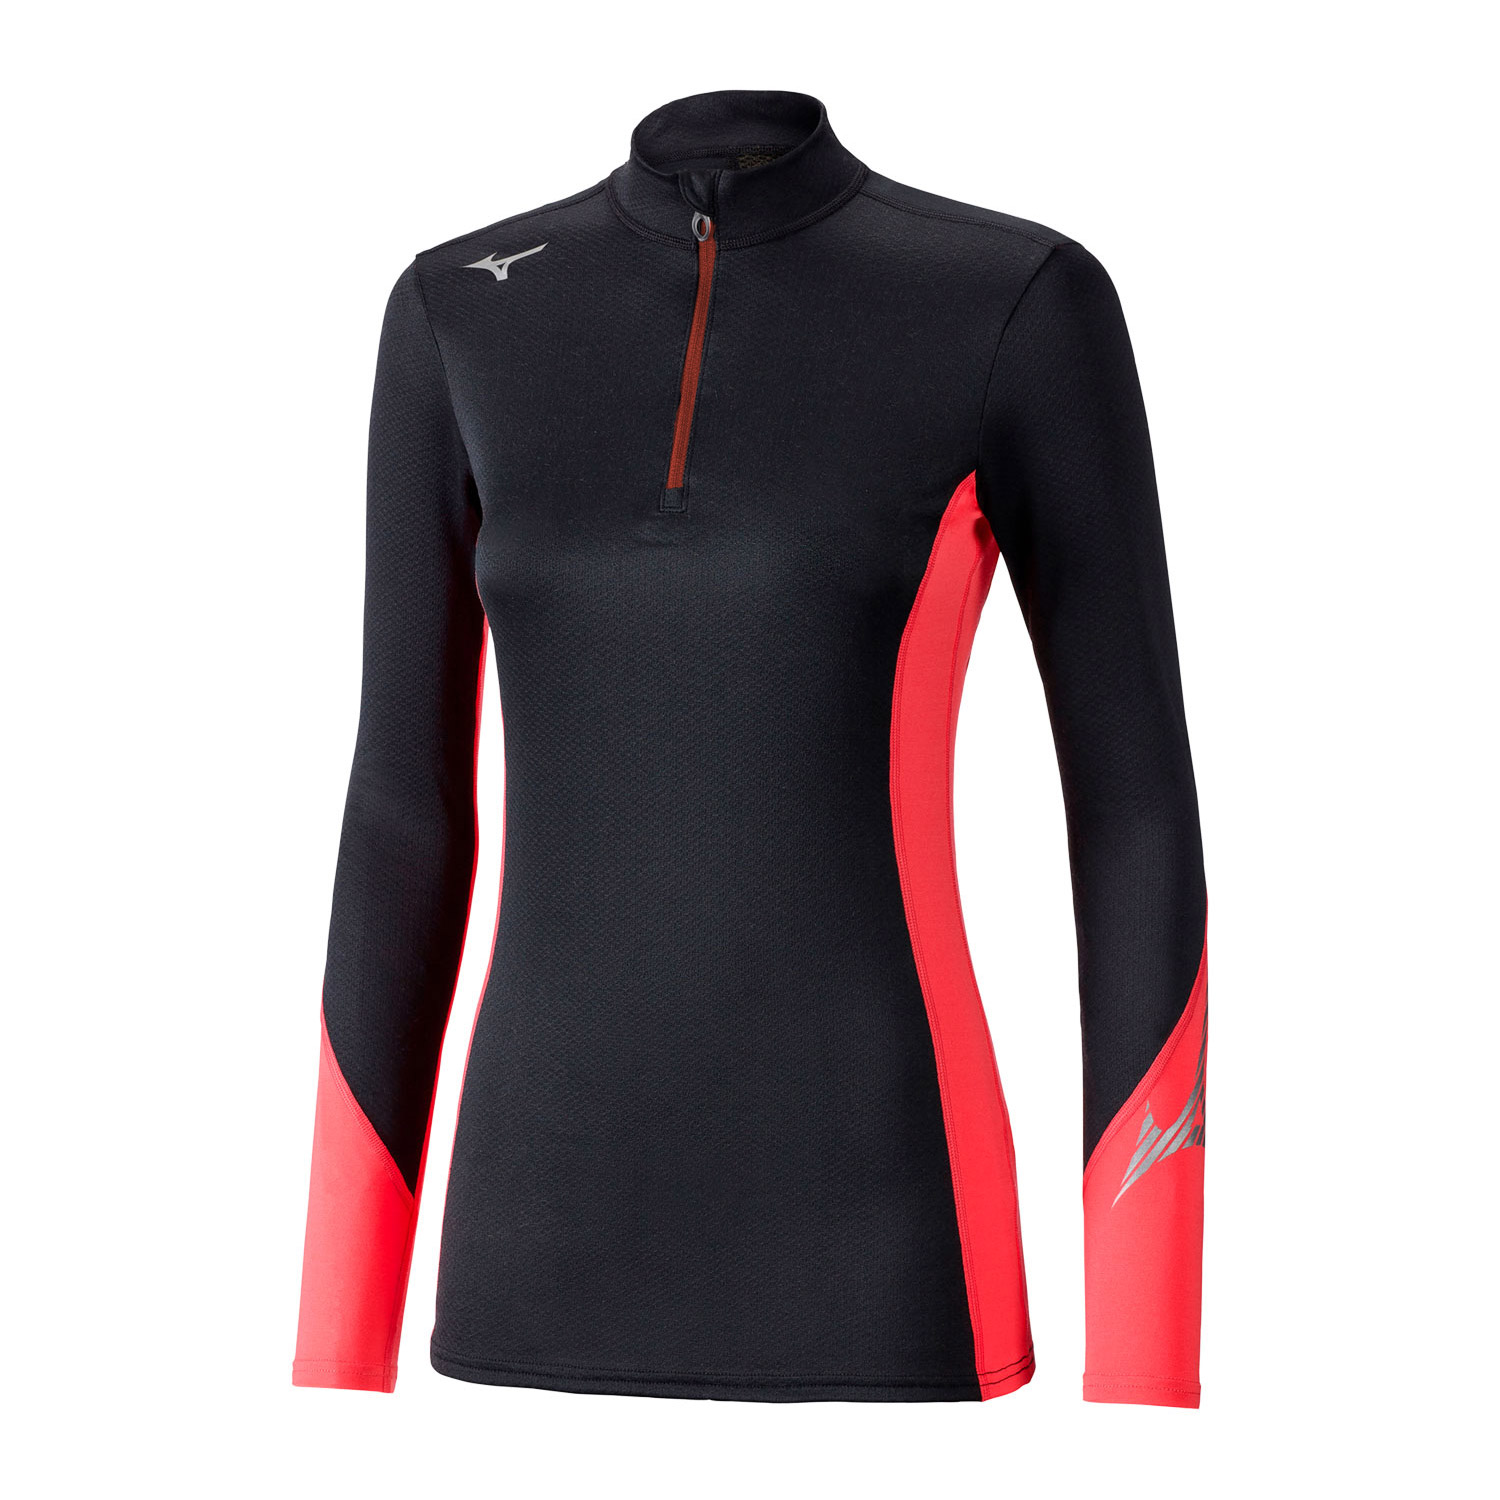 Mizuno Virtual Body G2 Shirt - Black/Coral